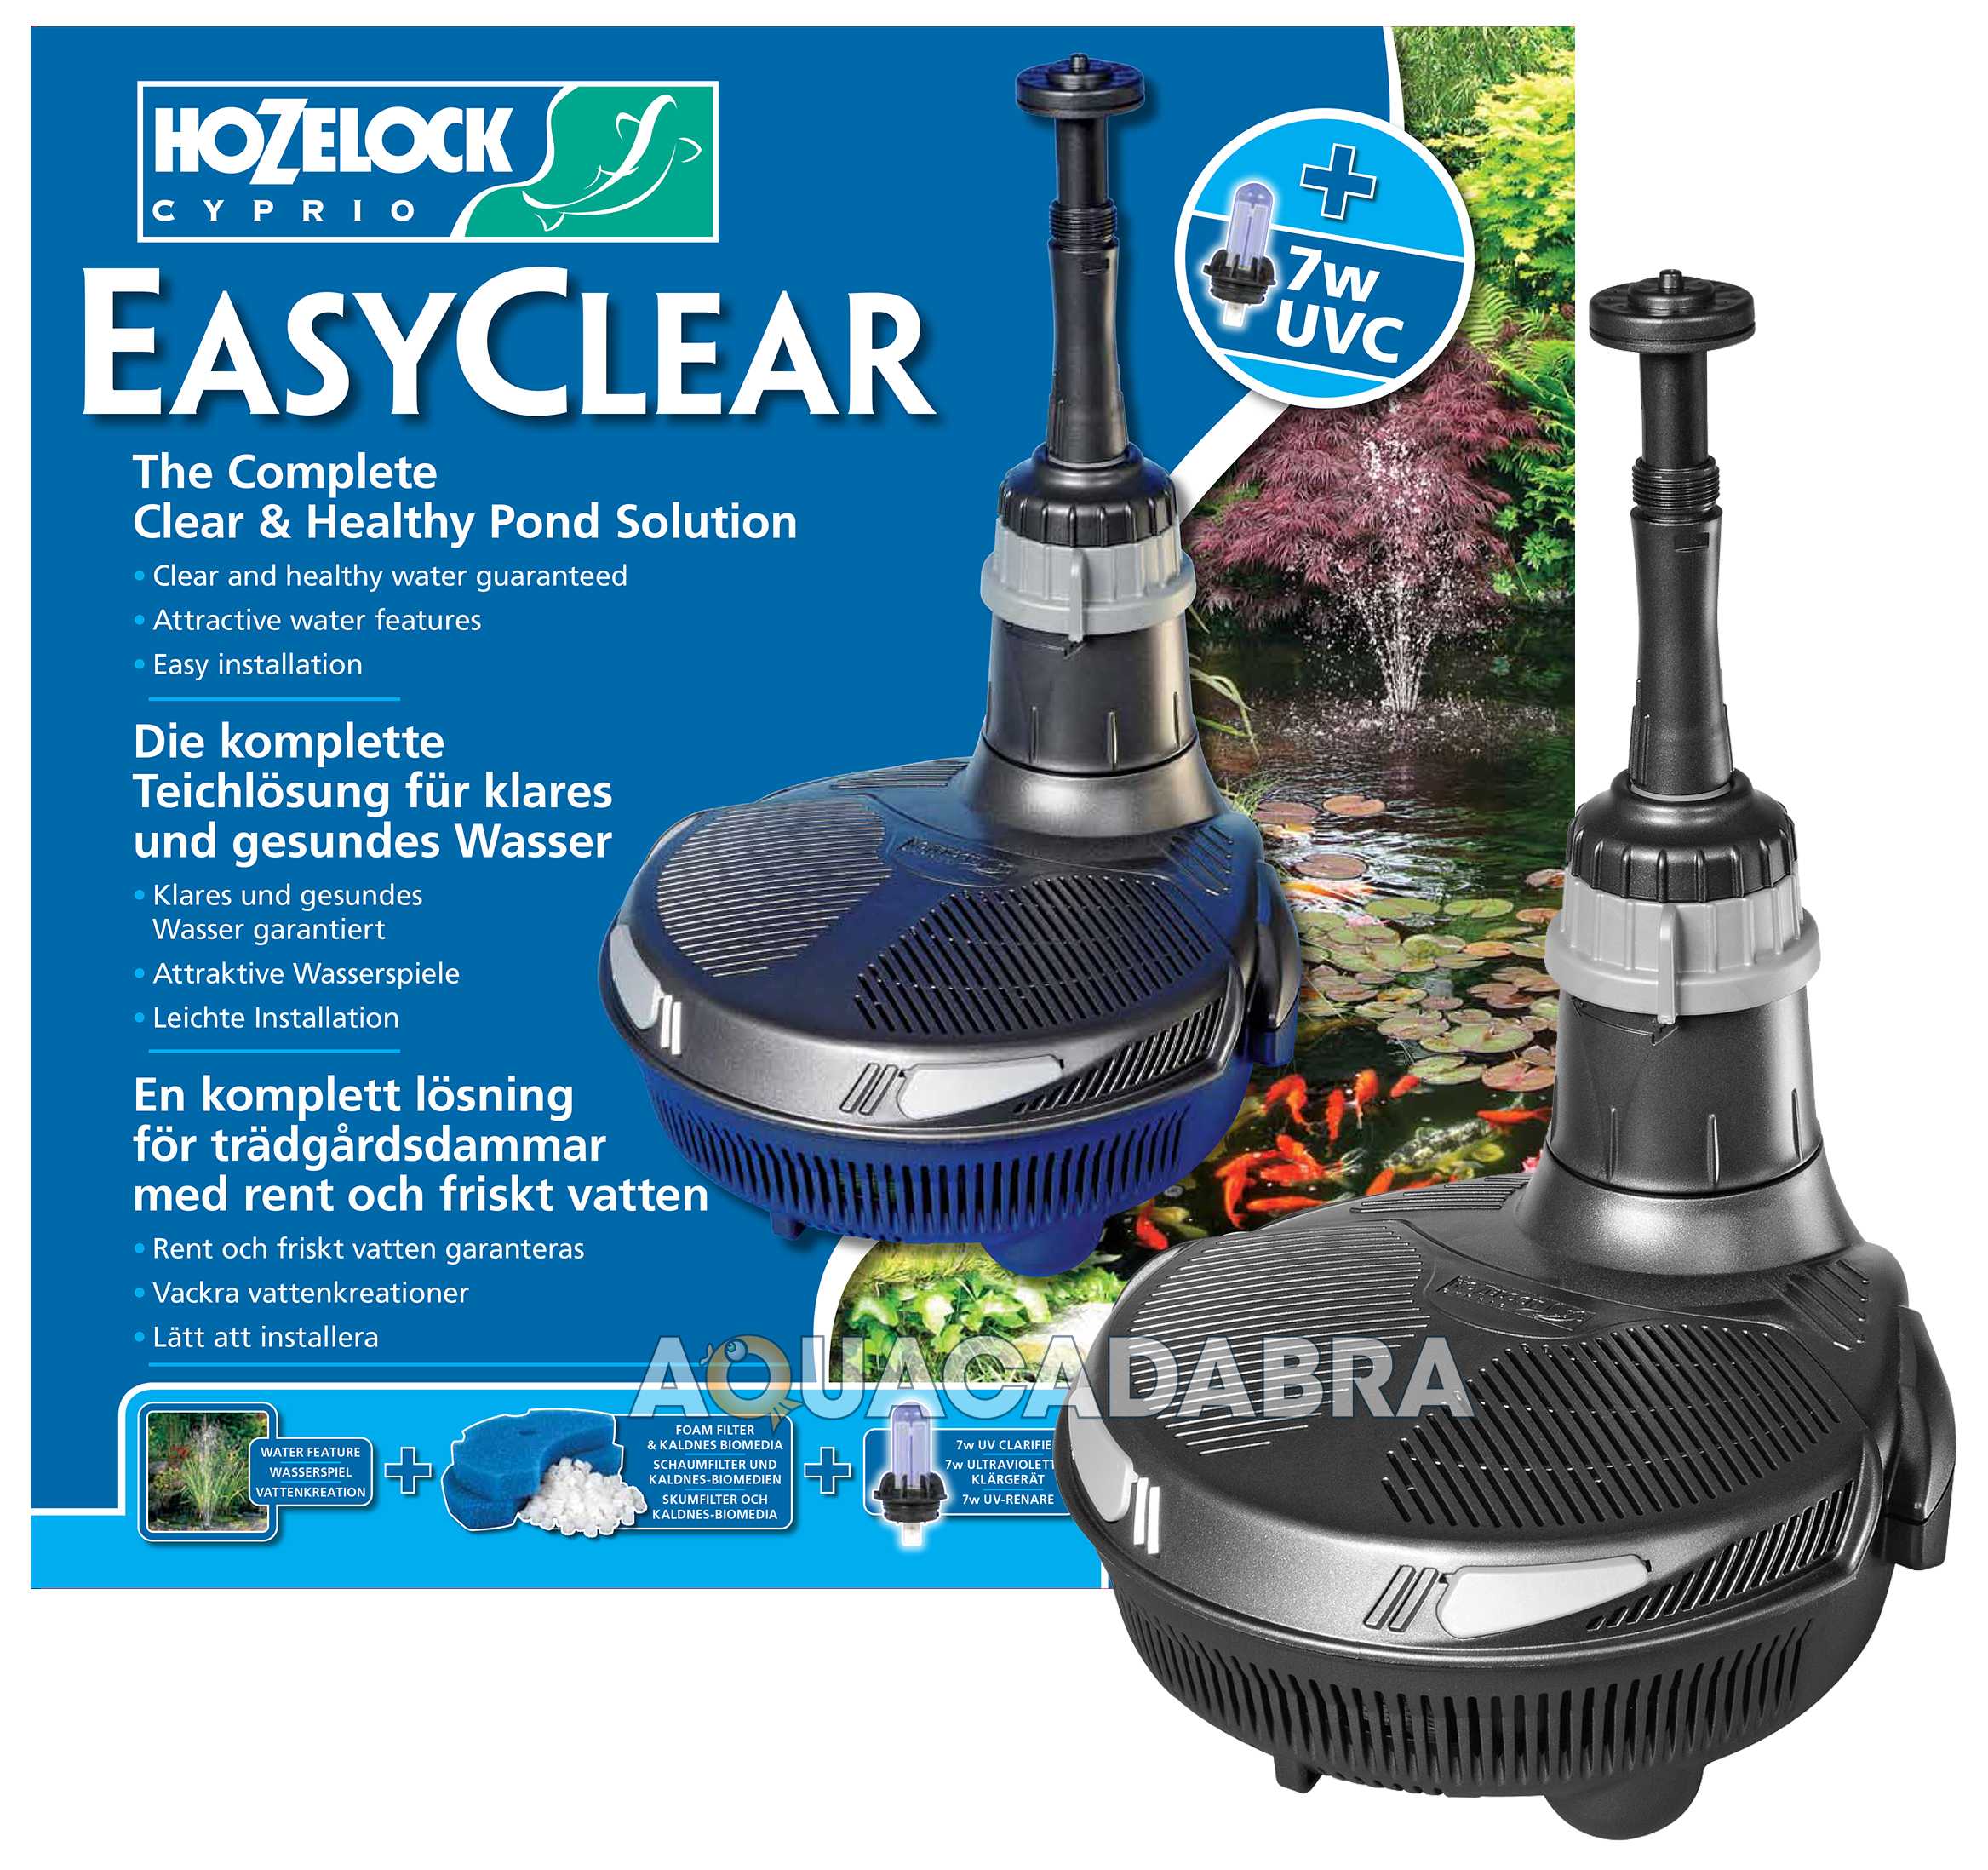 Hozelock easyclear 4500 fish koi pond all in one kit pump for Koi pond pump and filter kits